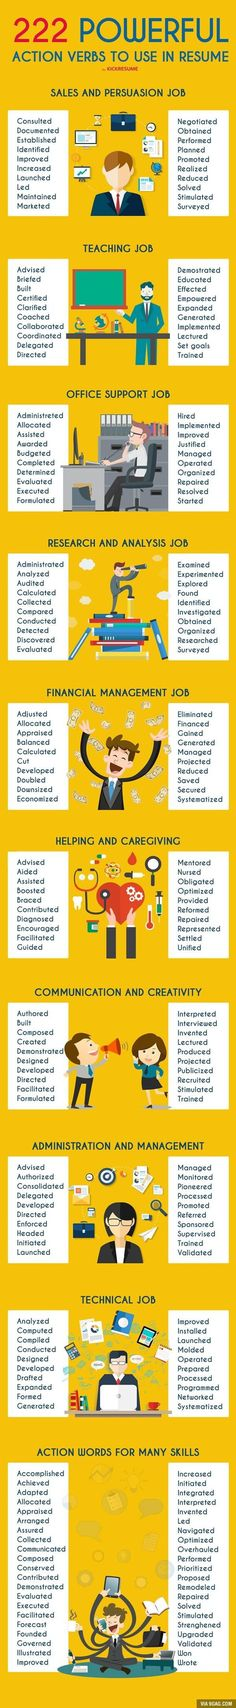 Resume Cheat Sheet 222 Action Verbs To Use In Your New Resume - what is an action verb